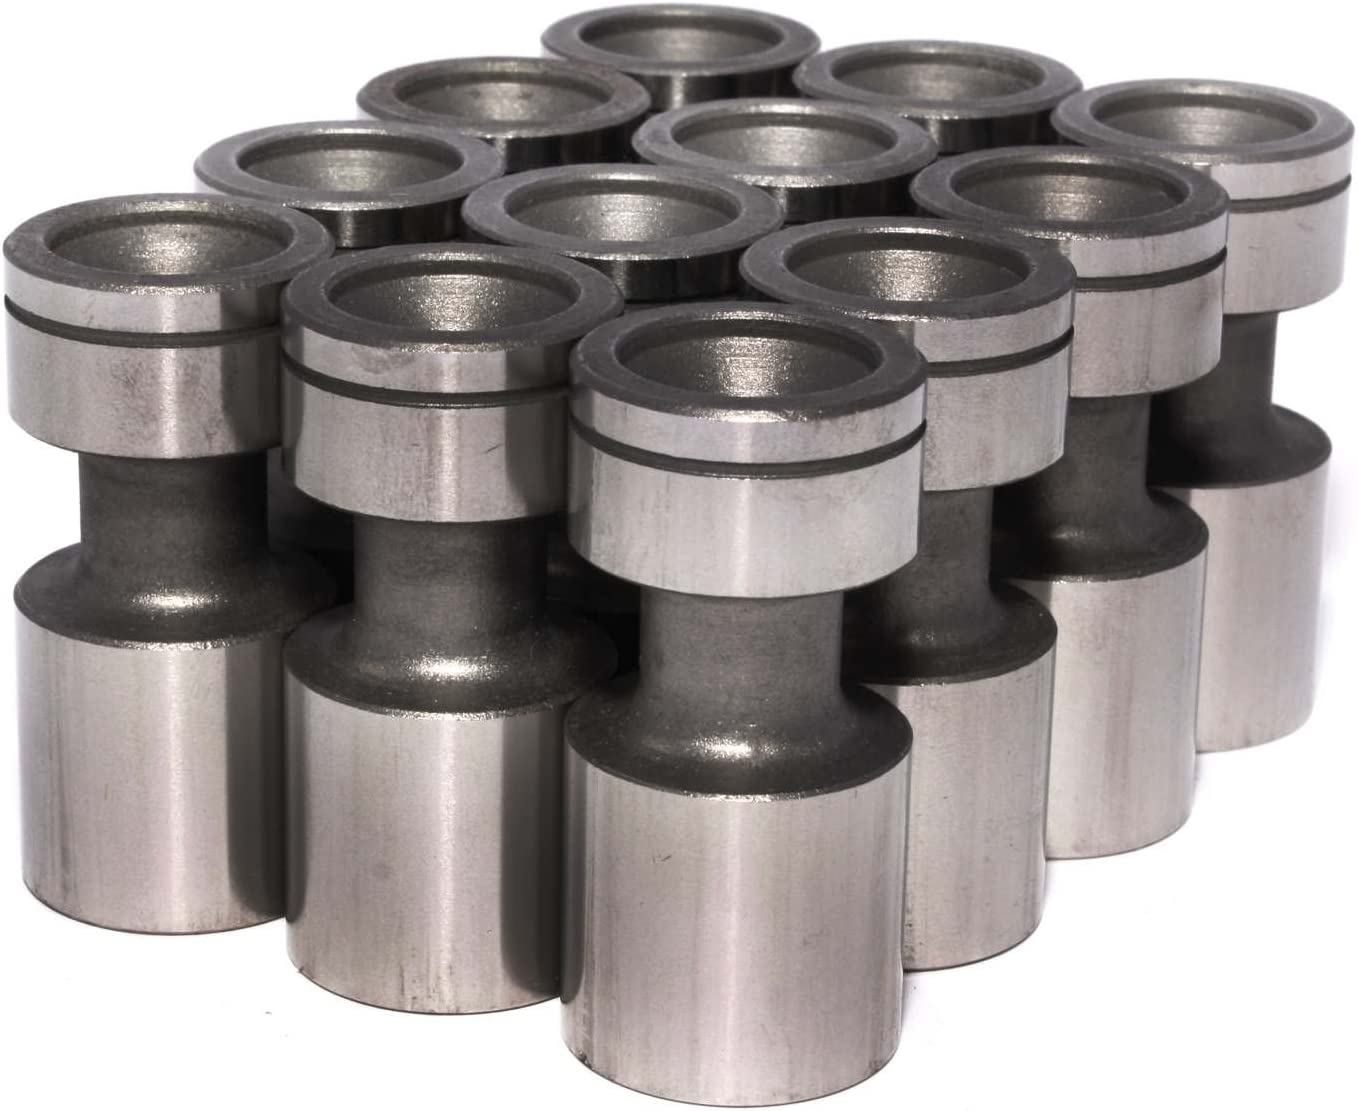 Set of 16 COMP Cams 2931-16 Solid//Mechanical Lifter for Ford Y-Block 292-312,